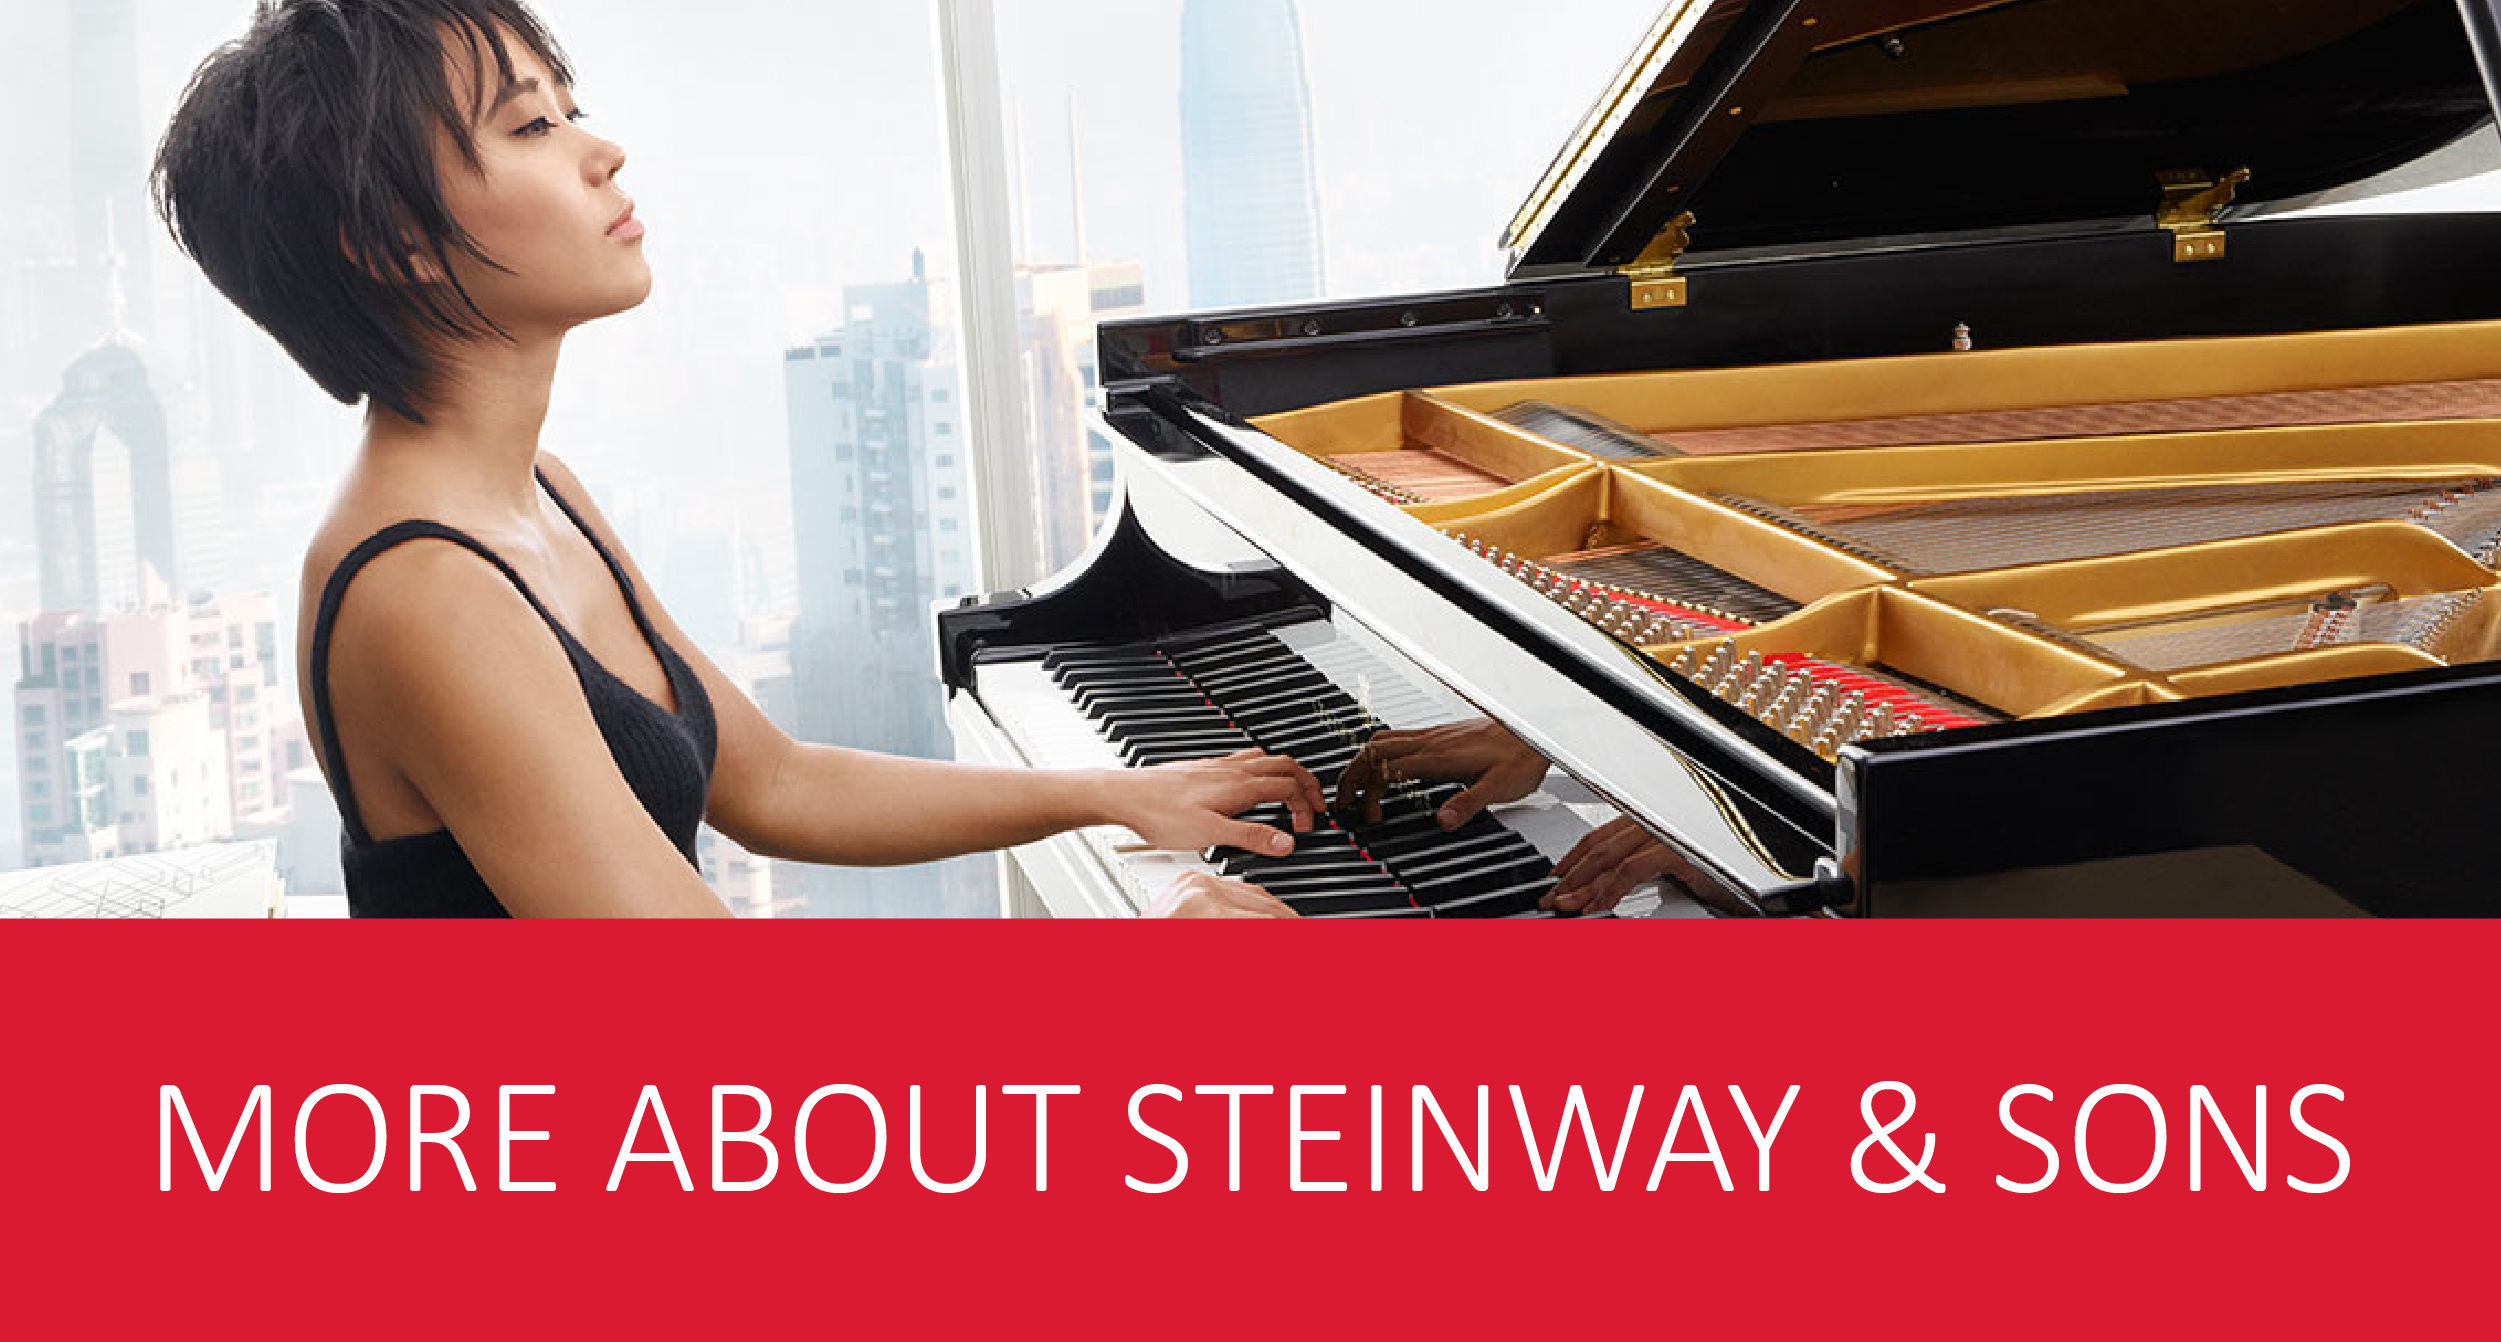 More about Steinway & Sons